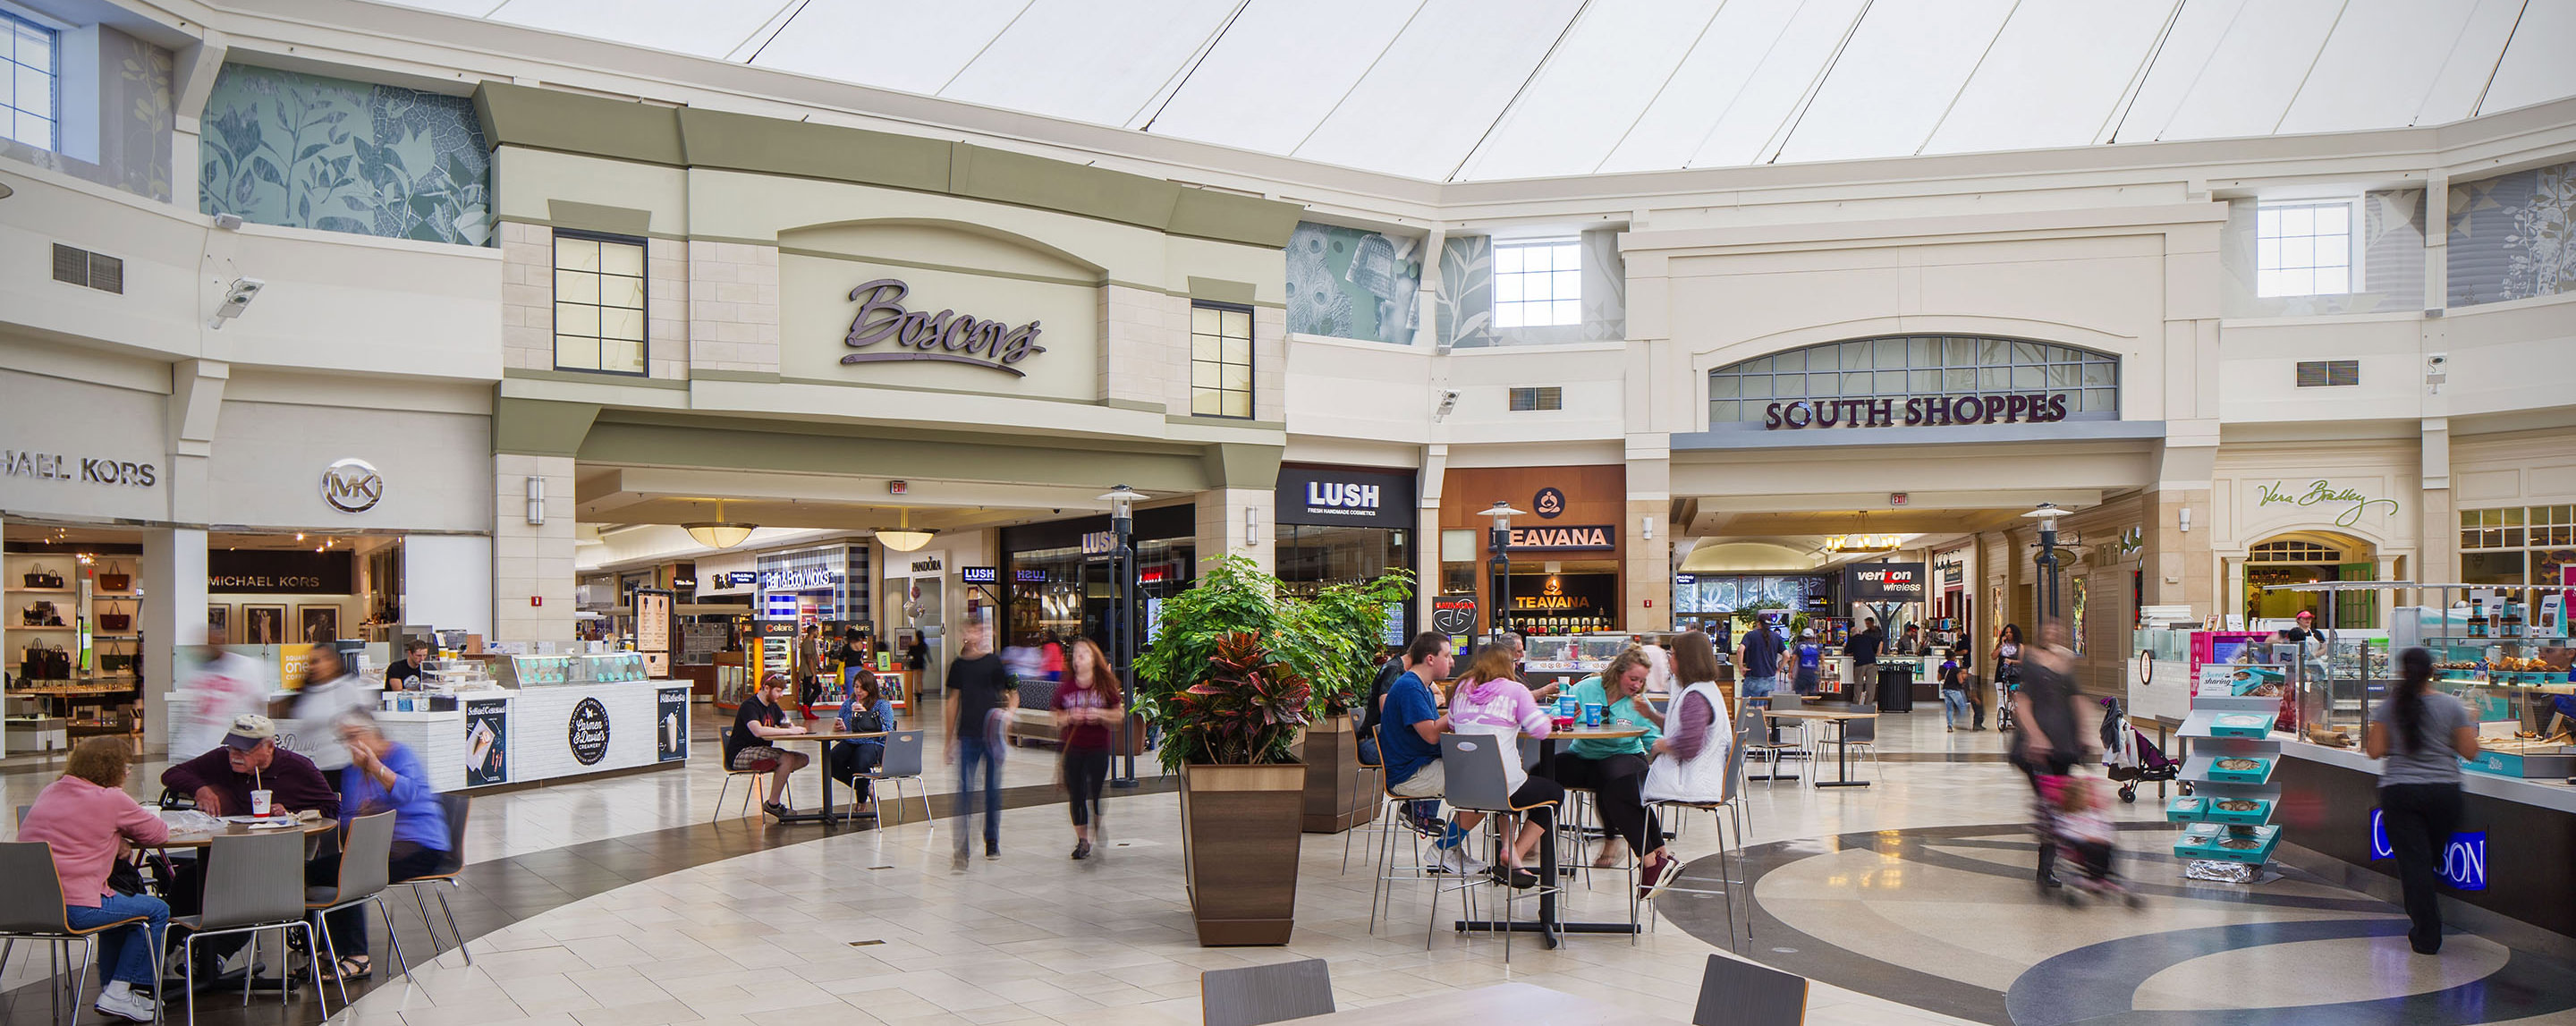 Park City Center is located in Lancaster, Pennsylvania and offers stores - Scroll down for Park City Center shopping information: store list (directory), locations, mall hours, contact and address.3/5(2).